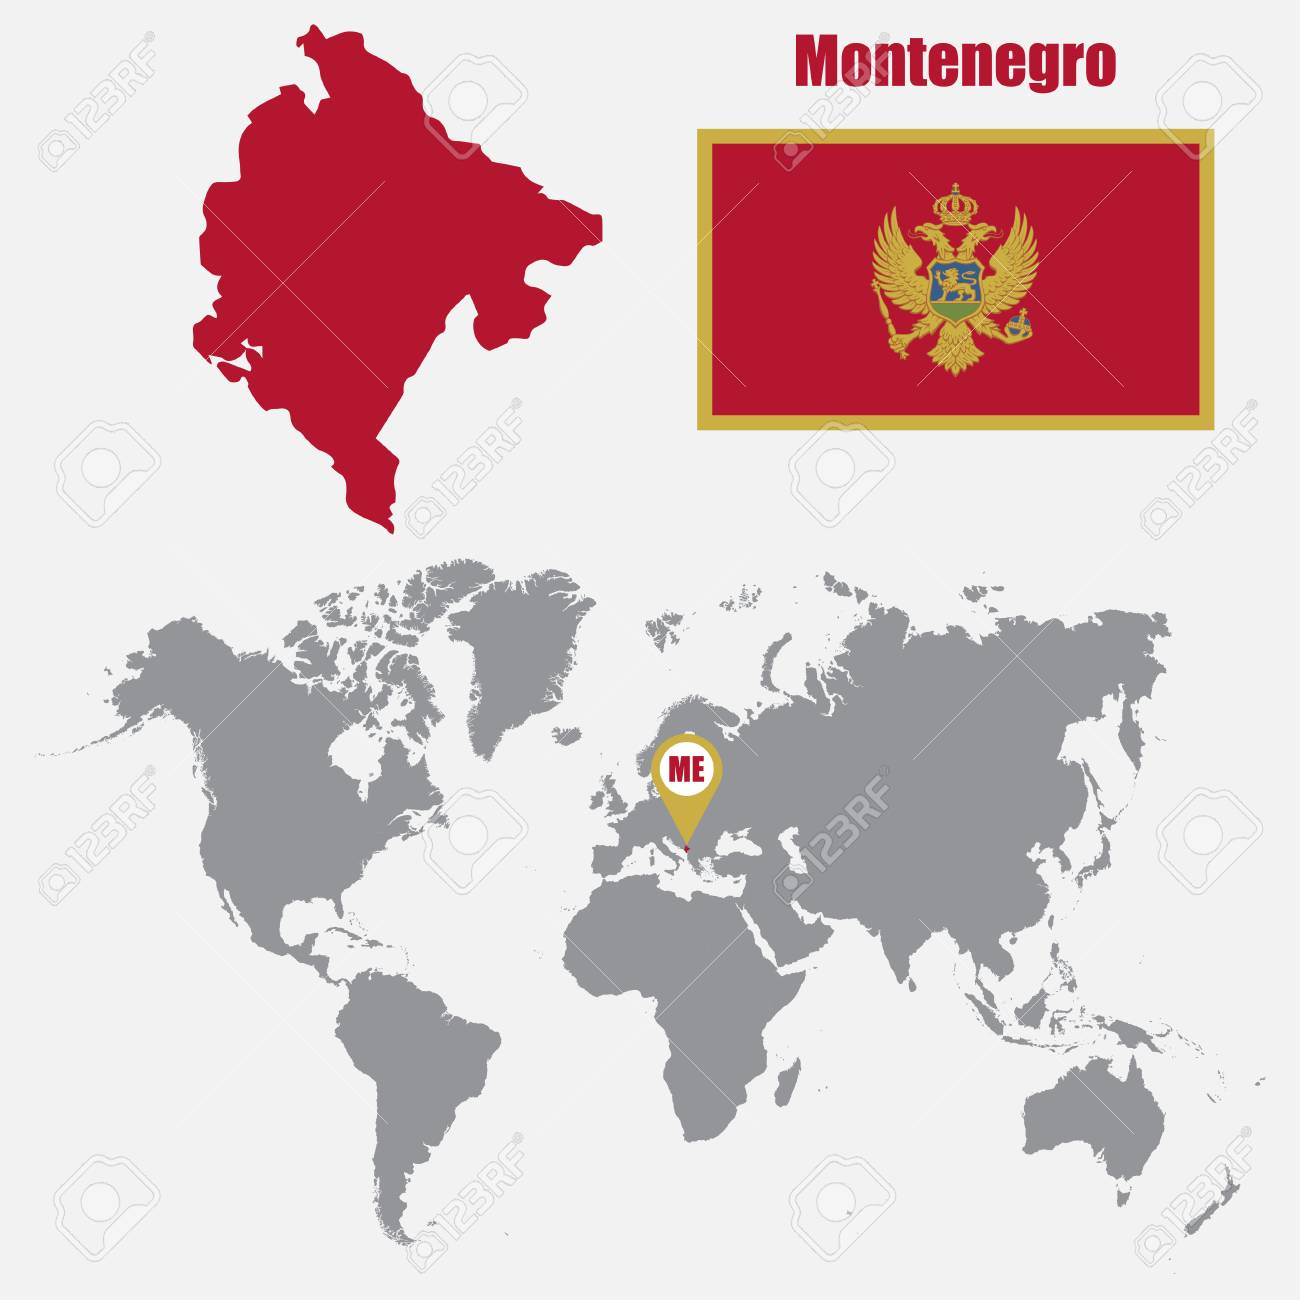 Montenegro Map On A World Map With Flag And Map Pointer Vector